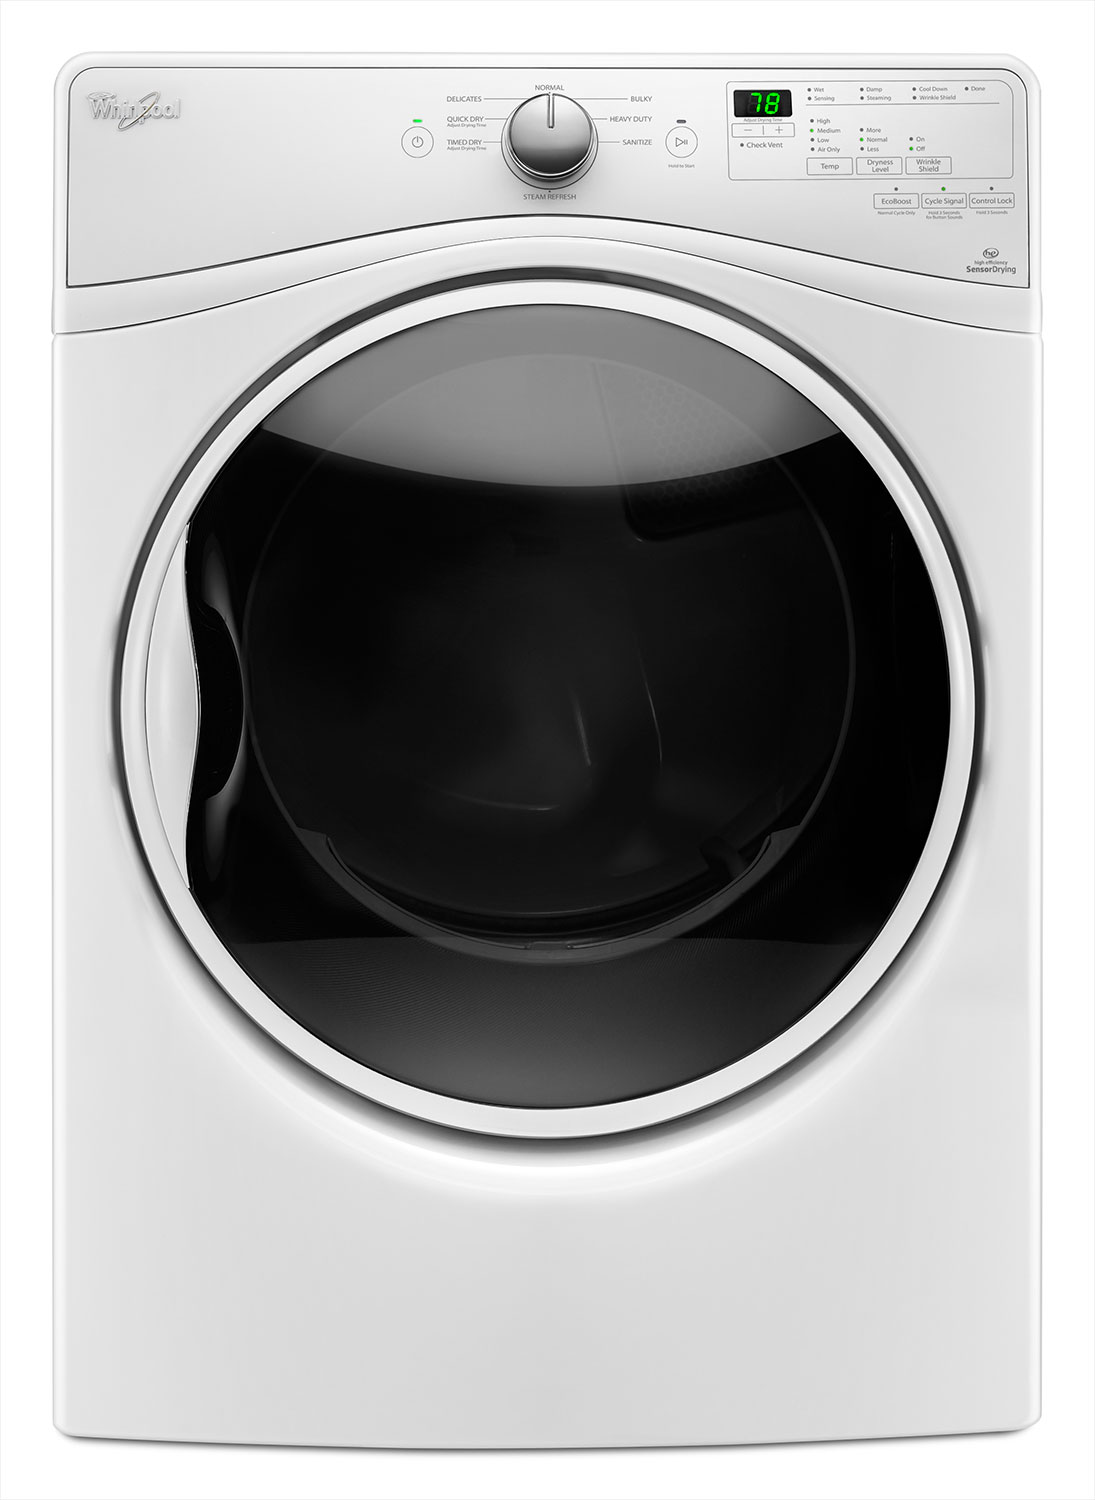 Washers and Dryers - Whirlpool 8.5 Cu. Ft. Gas Steam Dryer – WGD85HEFW